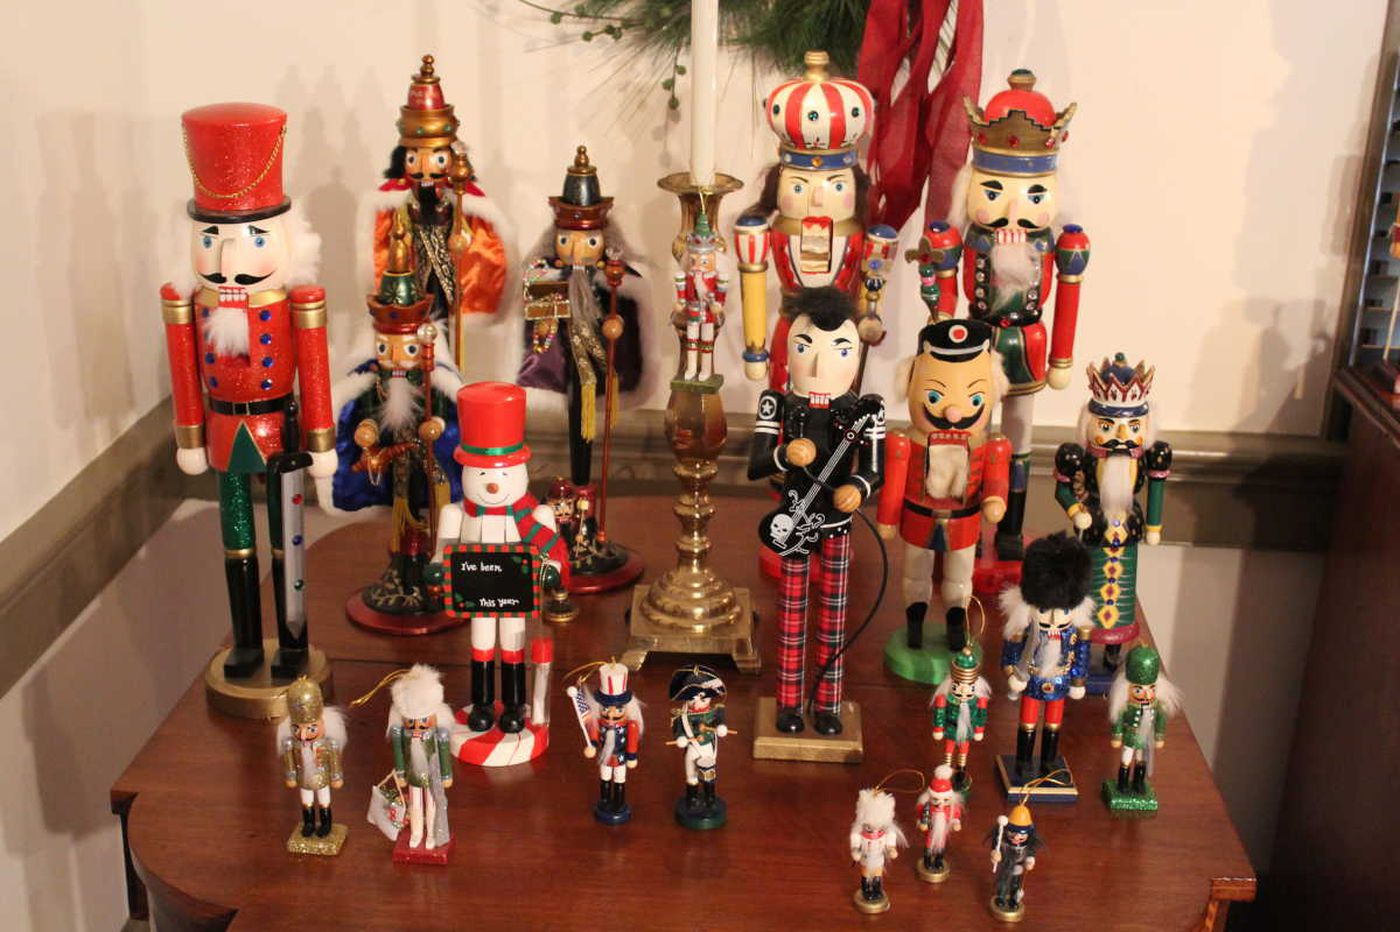 This historic Delaware site gathered 160 nutcrackers to celebrate ...